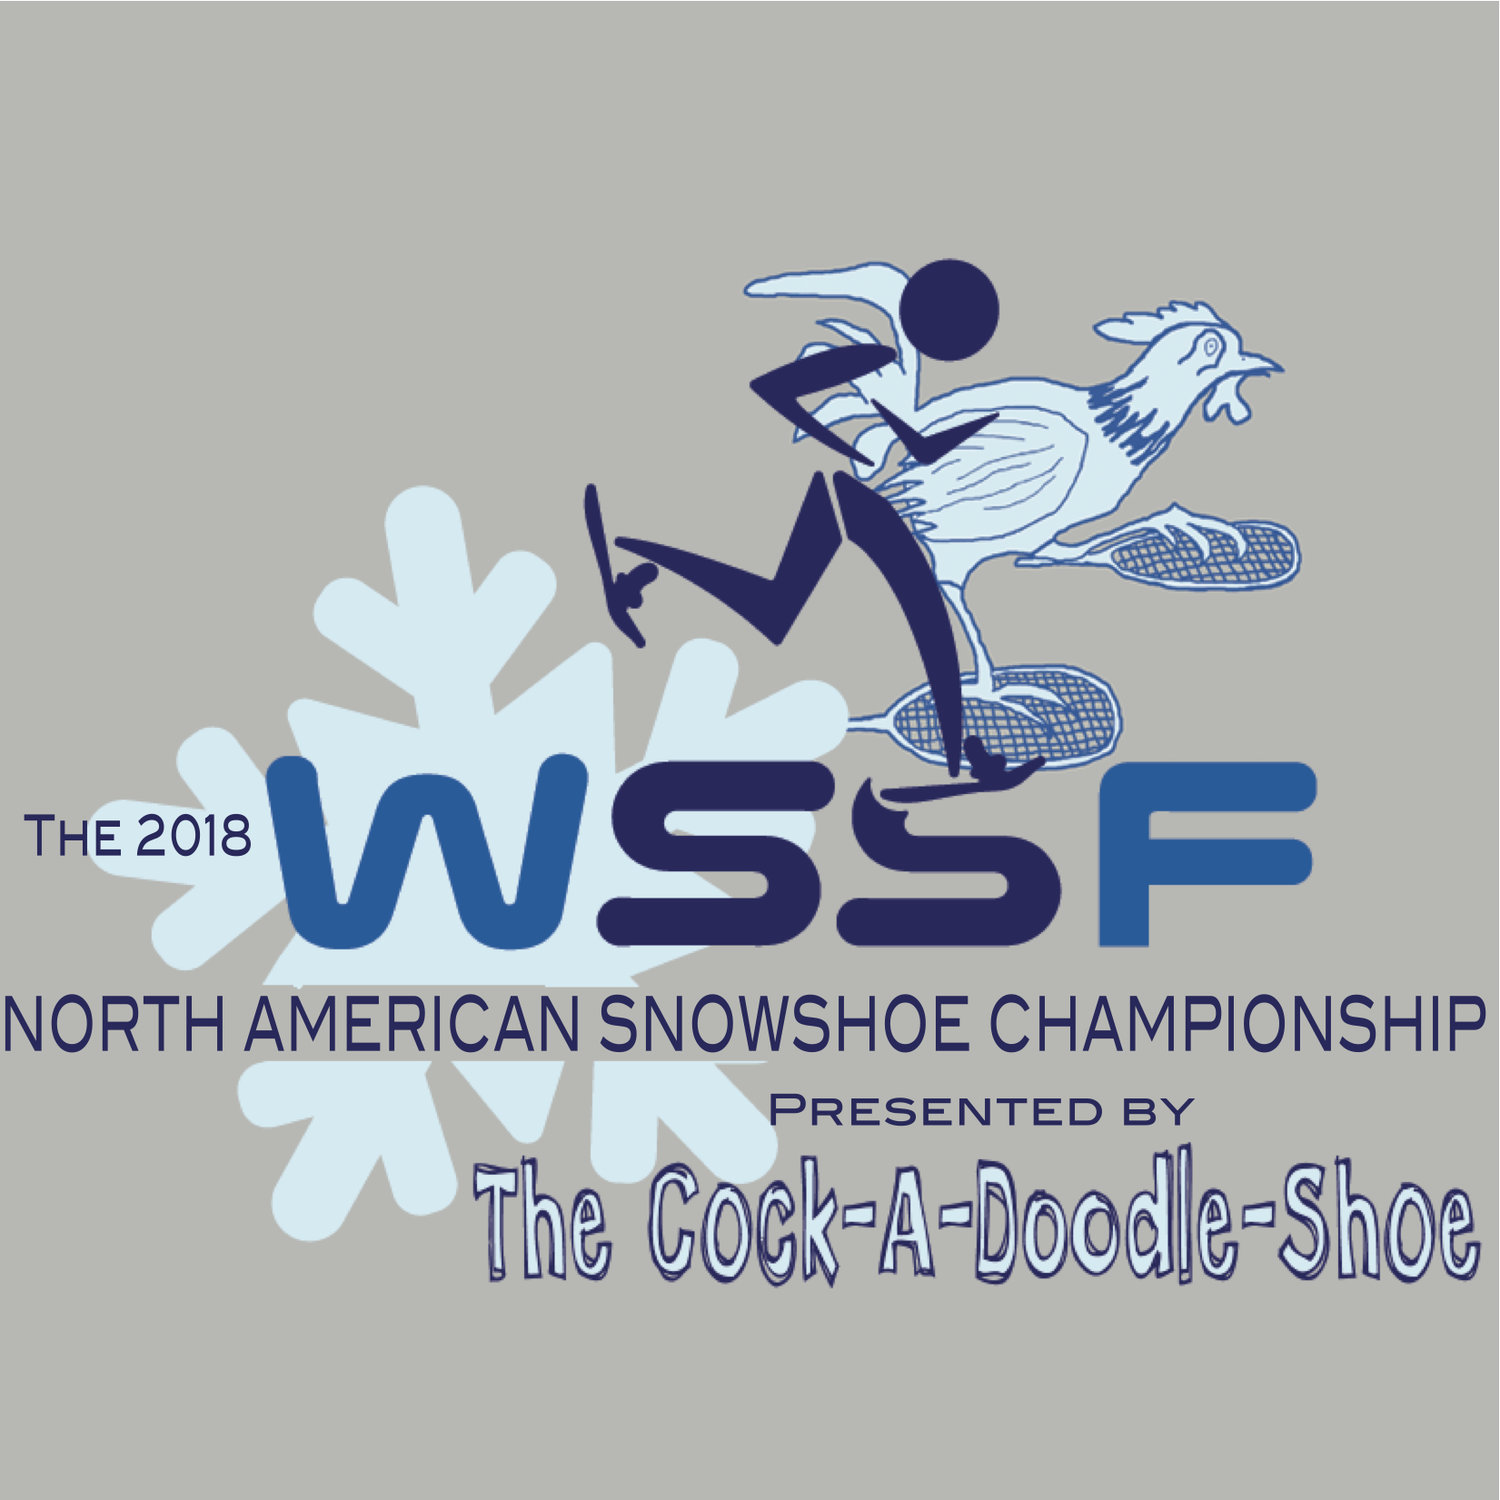 The 2018 WSSF North American Snowshoe Championship presented by The Cock-A-Doodle-Shoe